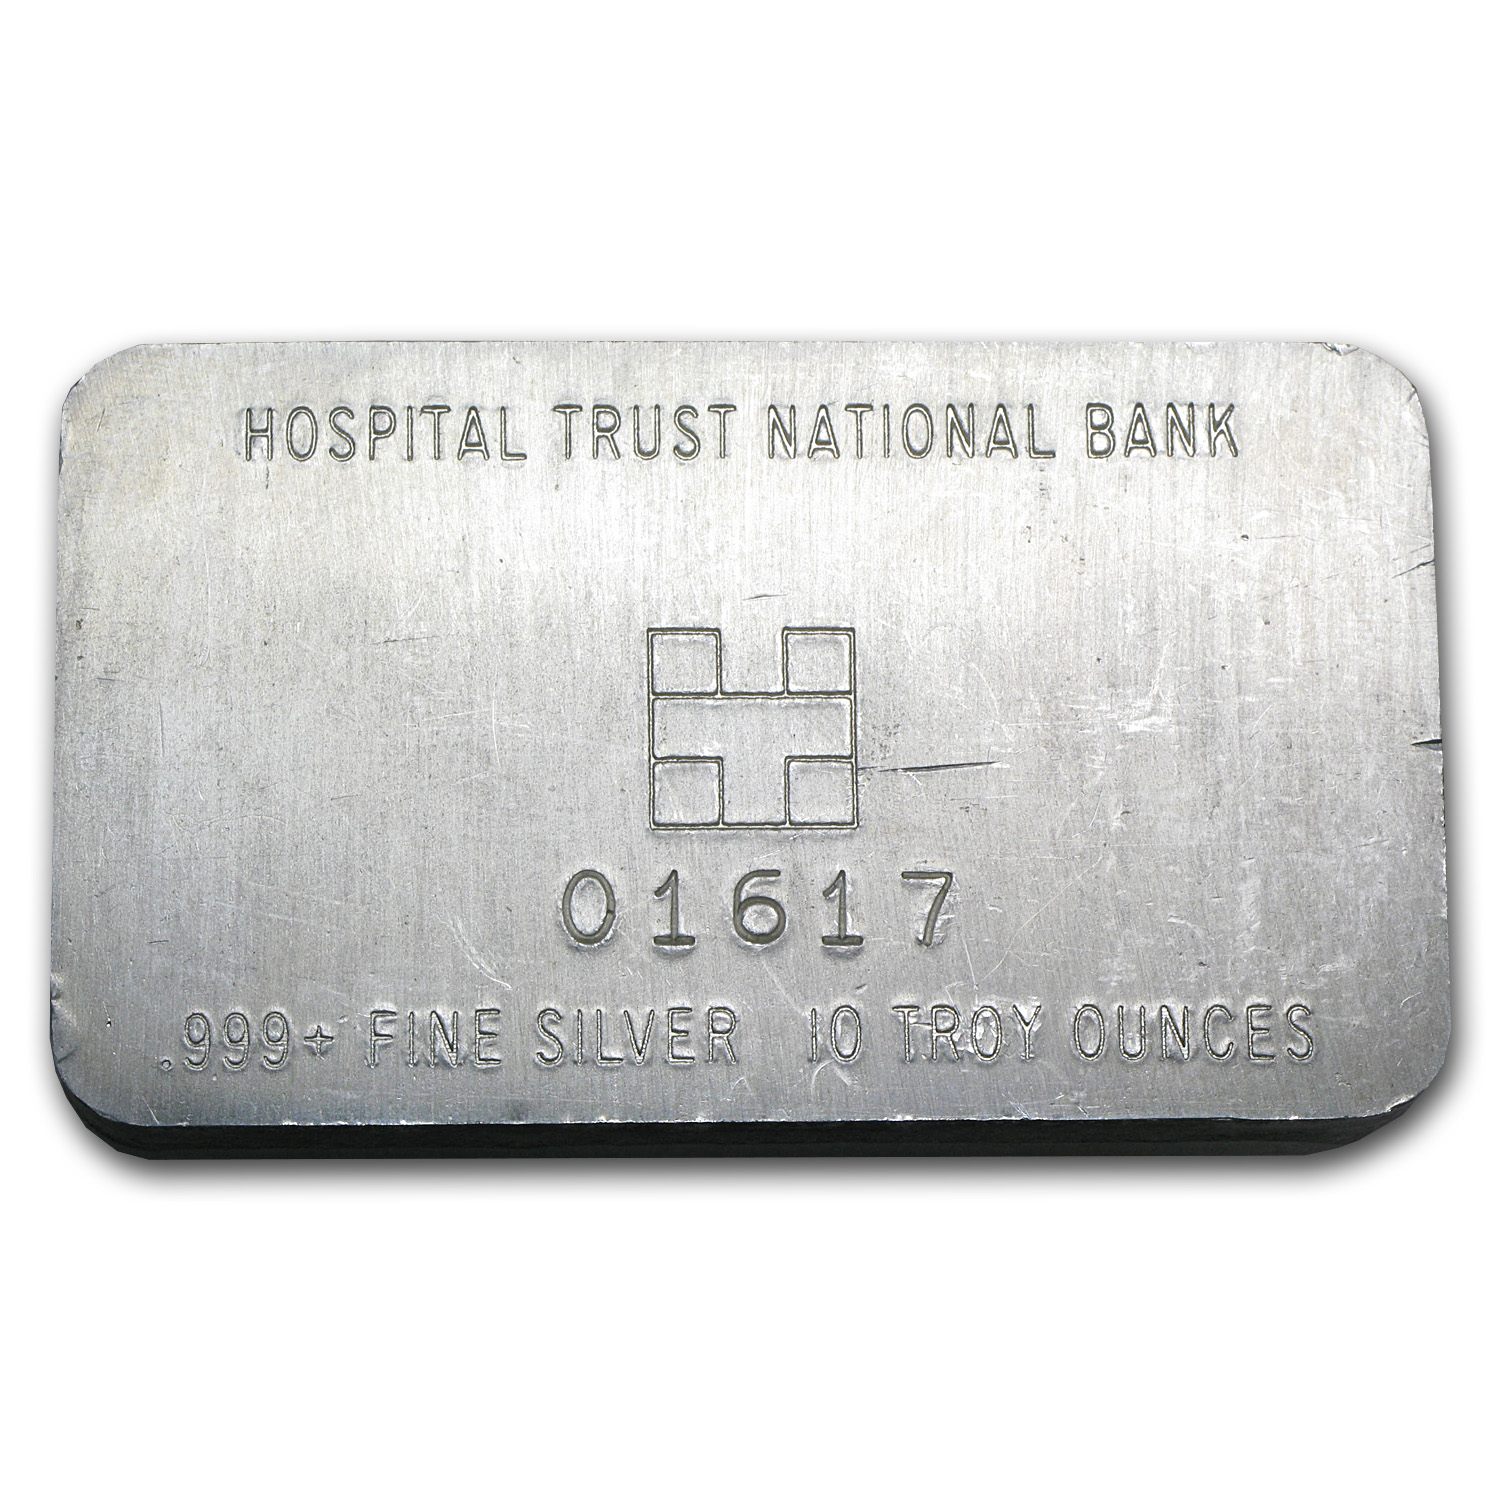 10 oz Silver Bar - Hospital Trust National Bank (Pressed)